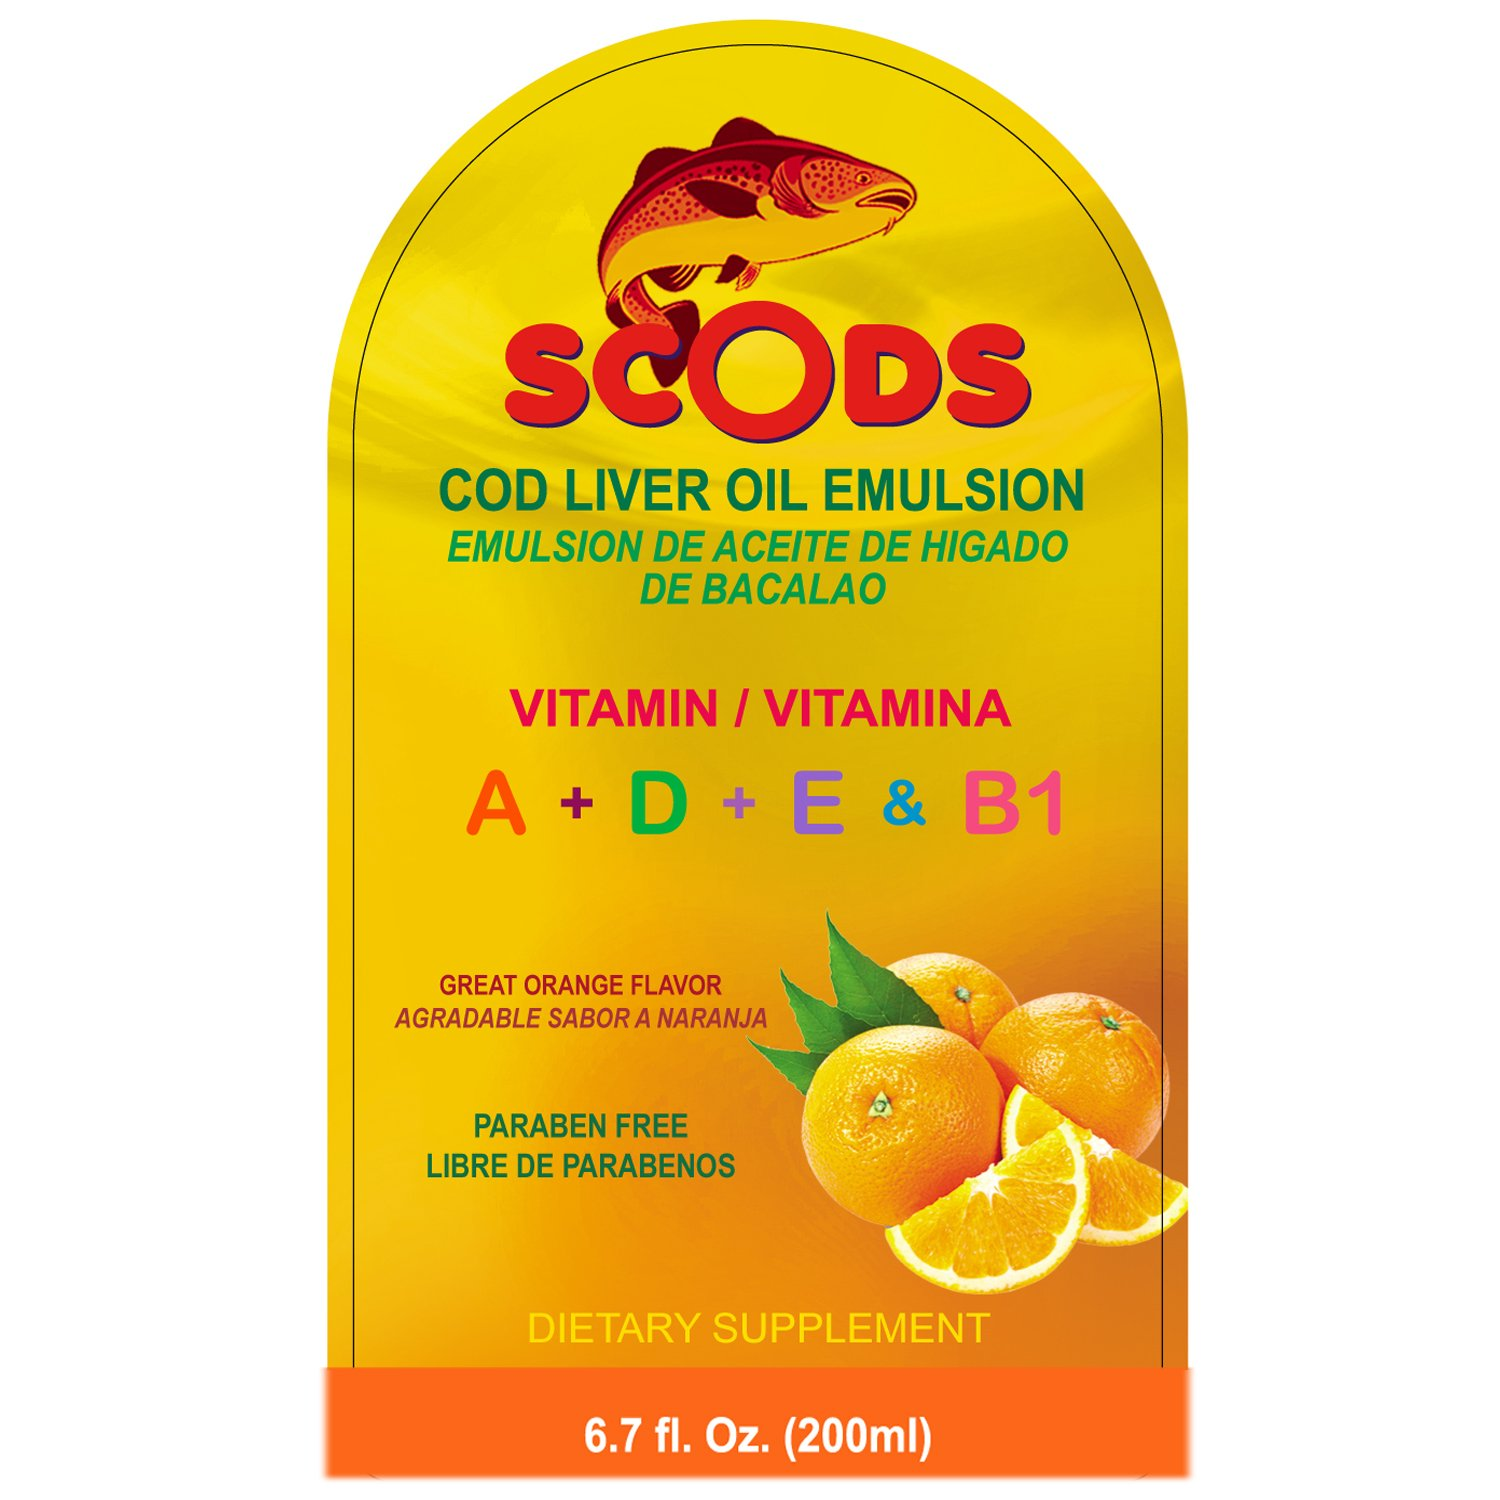 Amazon.com: Emulsion de Scods Naranja Cod Liver Oil Emulsion Orange 200ml Vitamin A + D + E & B1: Health & Personal Care